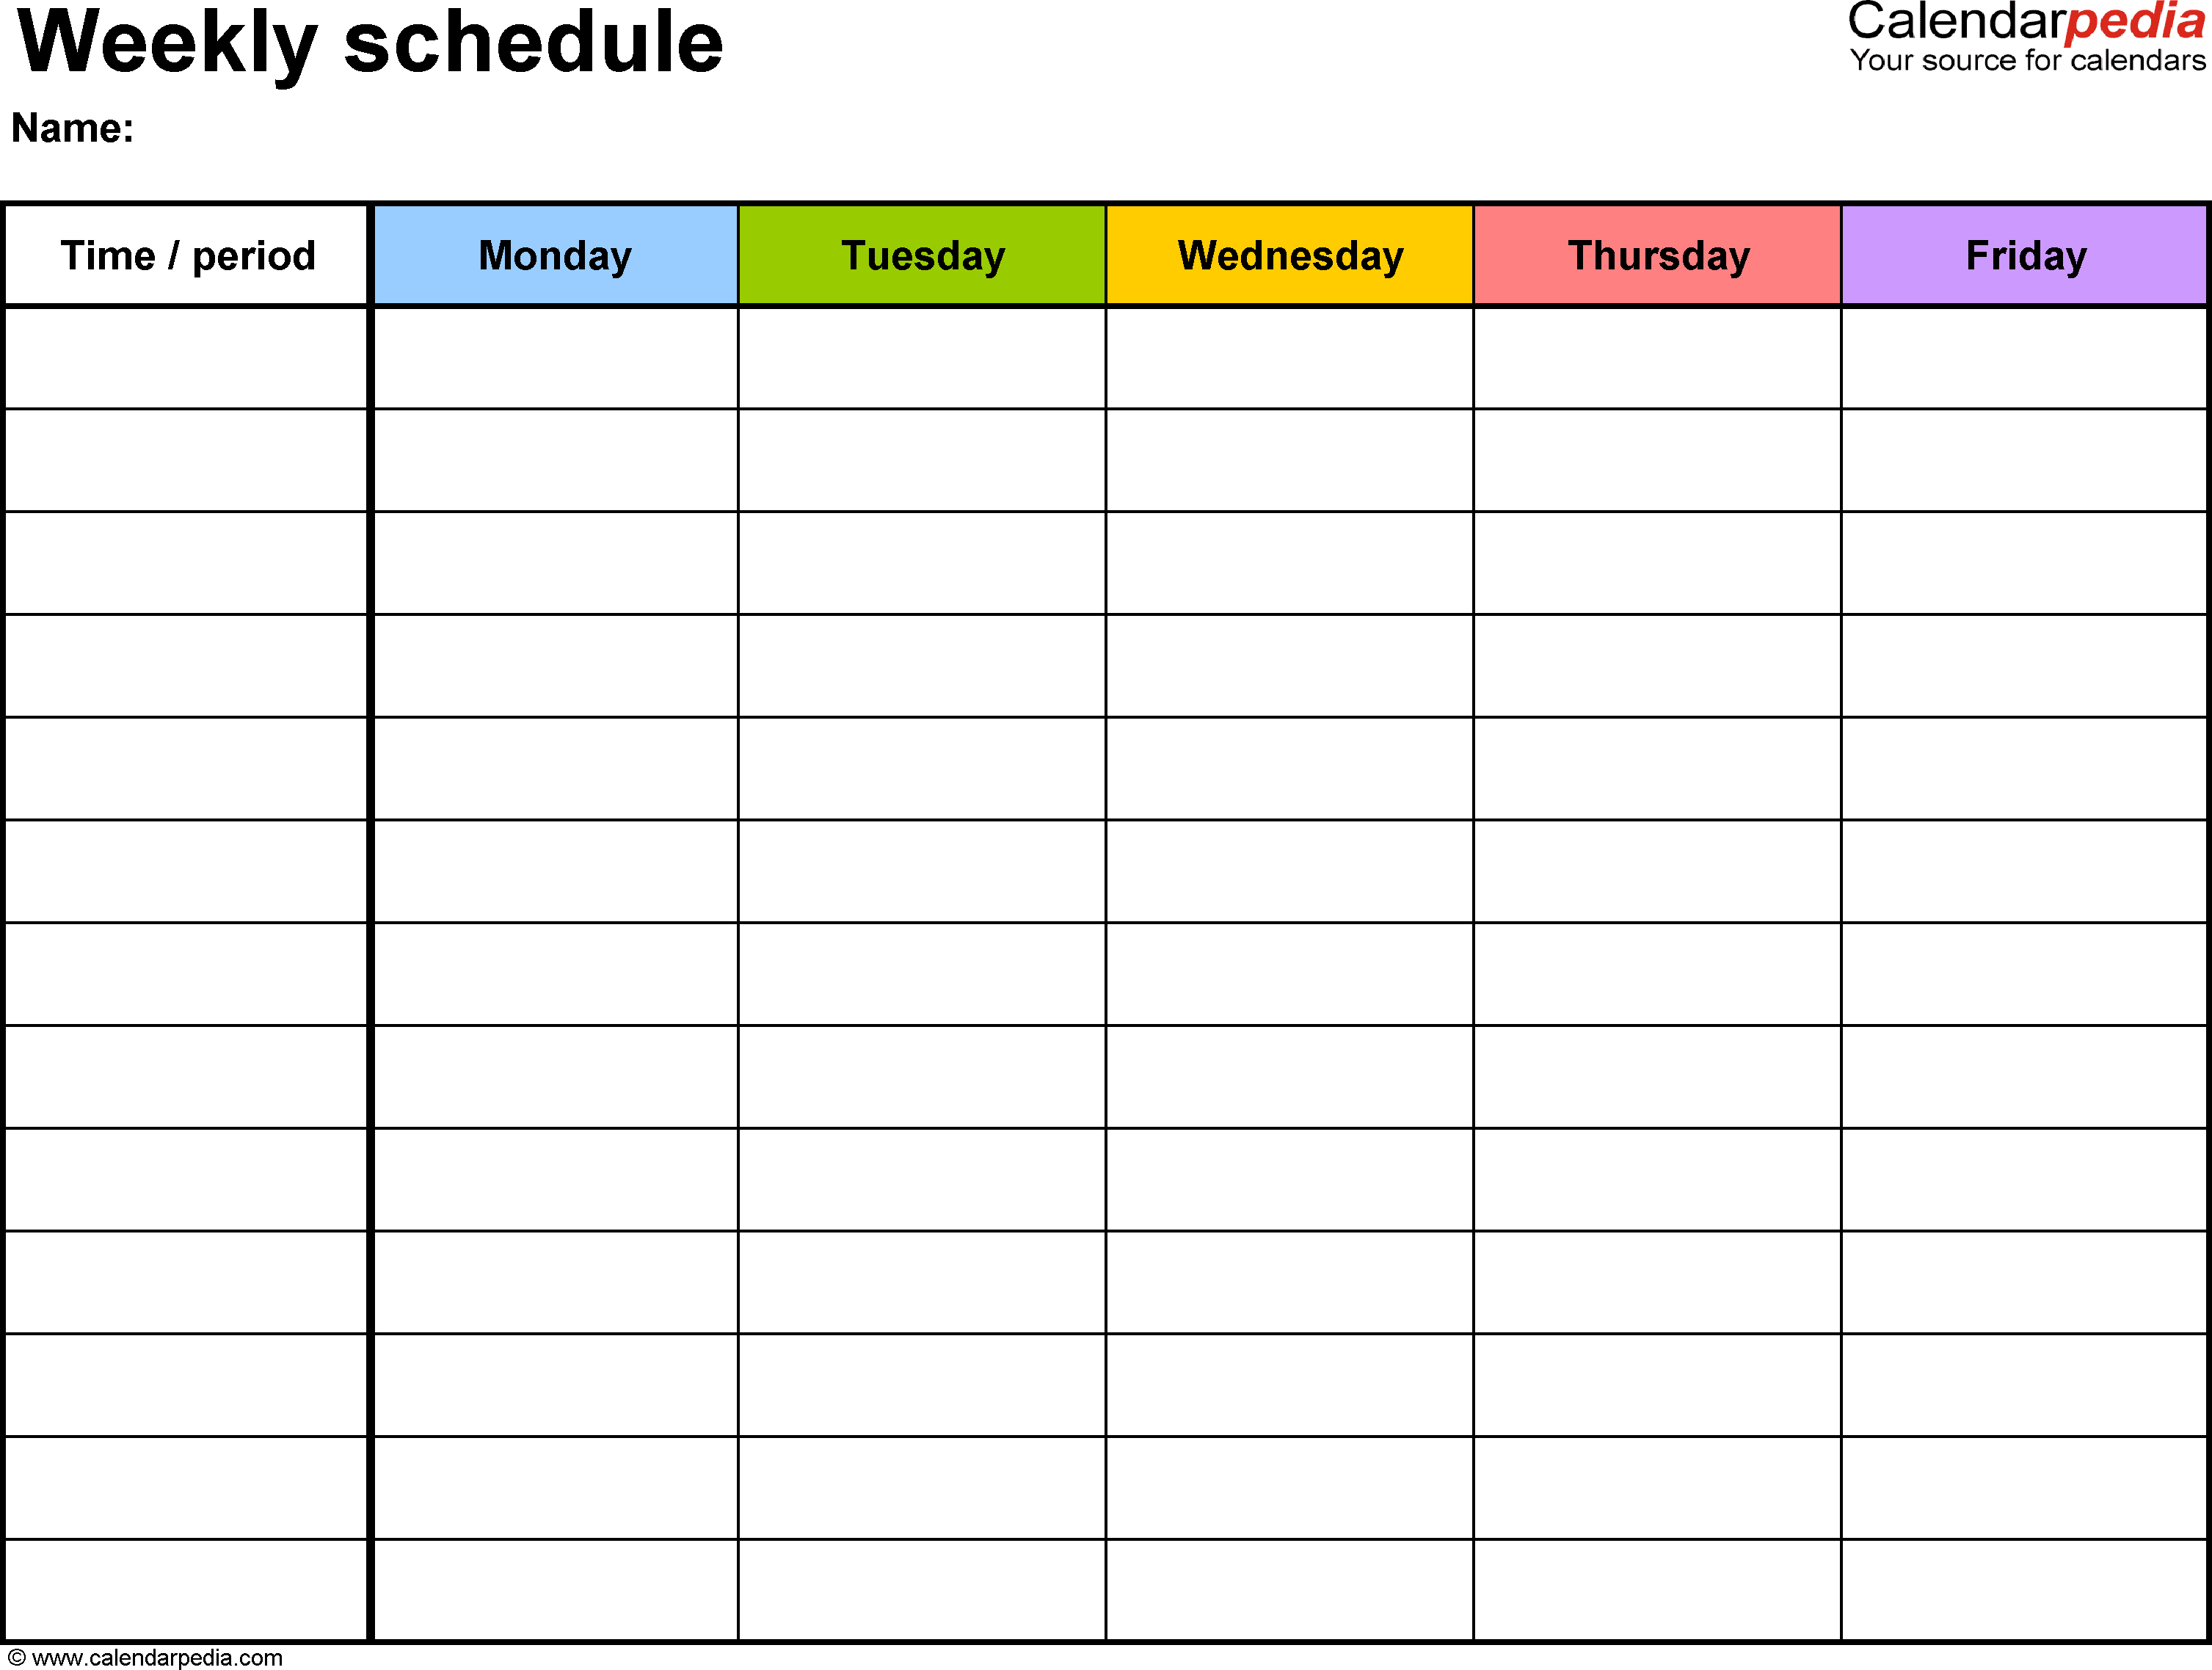 Free Weekly Schedule Templates For Pdf - 18 Templates with regard to Free Printable Preschool Handprint Calendar Templates